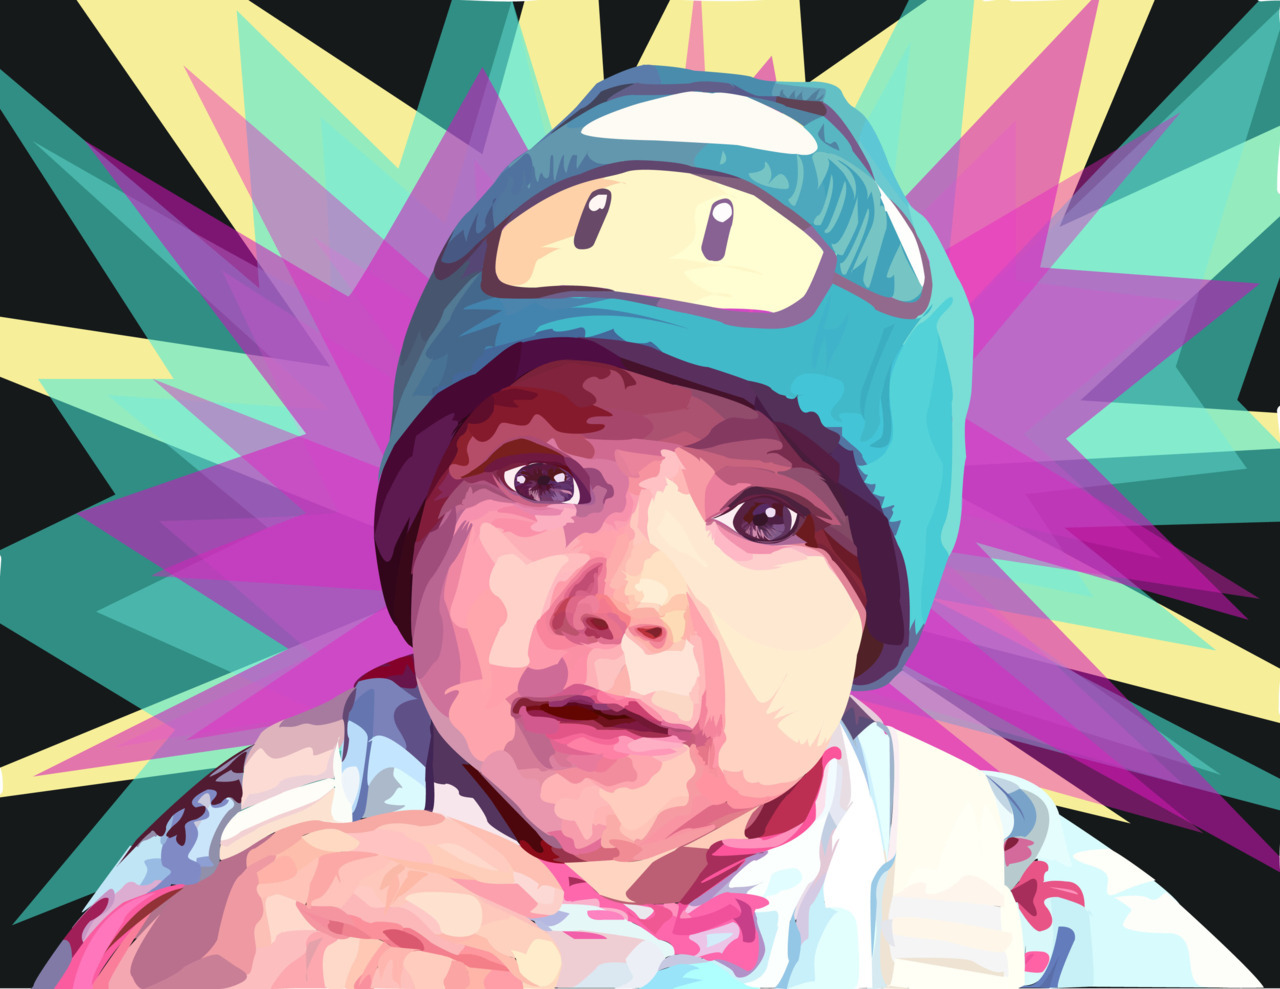 kayicaterpillars:  I made a portrait of my niece using Adobe Illustrator for my Digital Imaging class. I am really happy with it. J'ai dessiné ma nièce avec Adobe Illustrator pour ma classe d'imagen digital. (je suis dessolée pour mon française. je suis sur mon troisième semestre de française)   dibuje a mi sobrina usando Adobe Illustrator